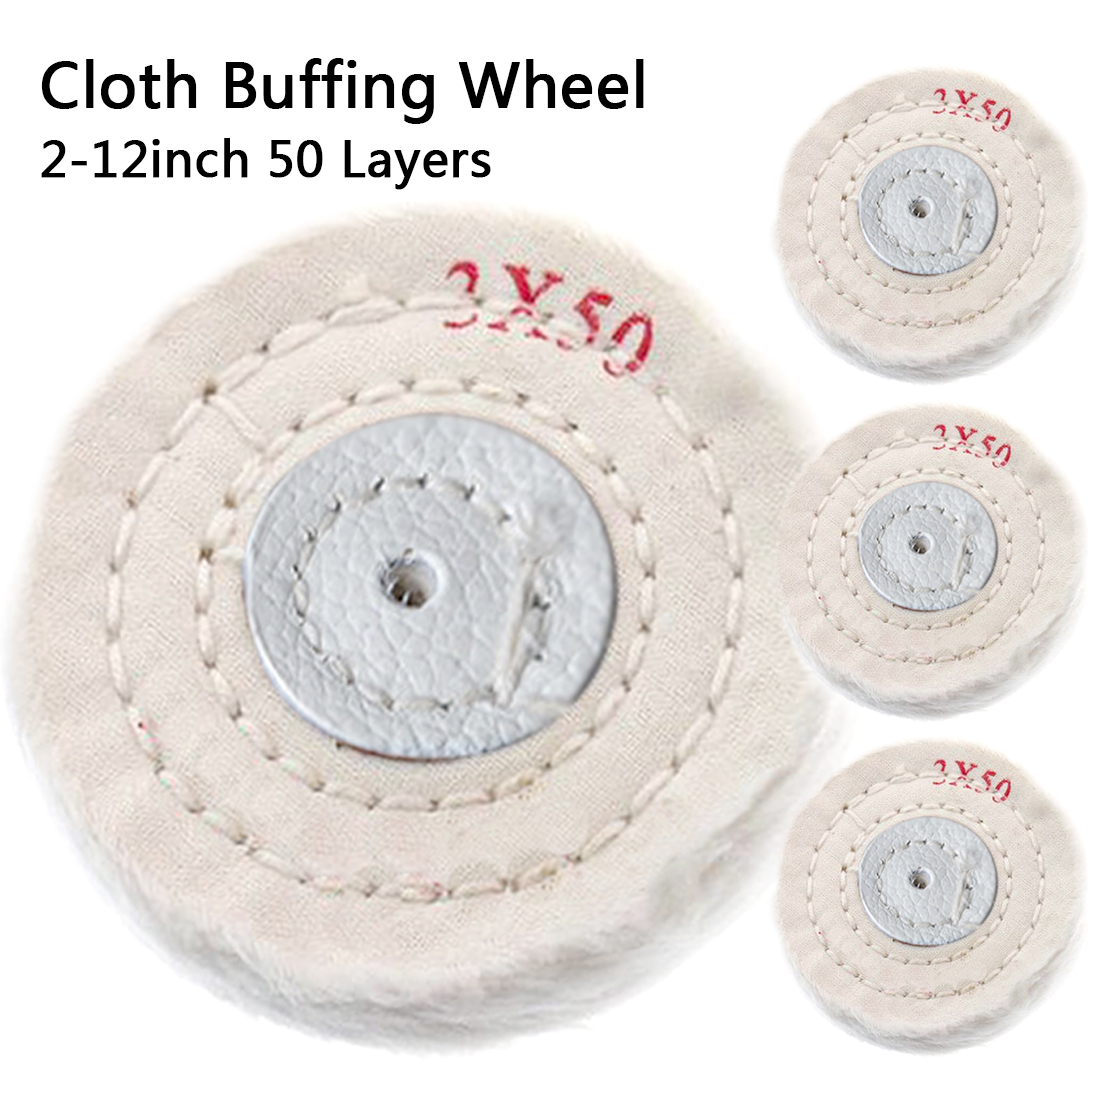 Cotton Polishing Wheel Cloth Buffing Wheel 2-12 Inch Arbor Buffer Mirror Polish White Round Wheel 50 Layers Abrasive Tools